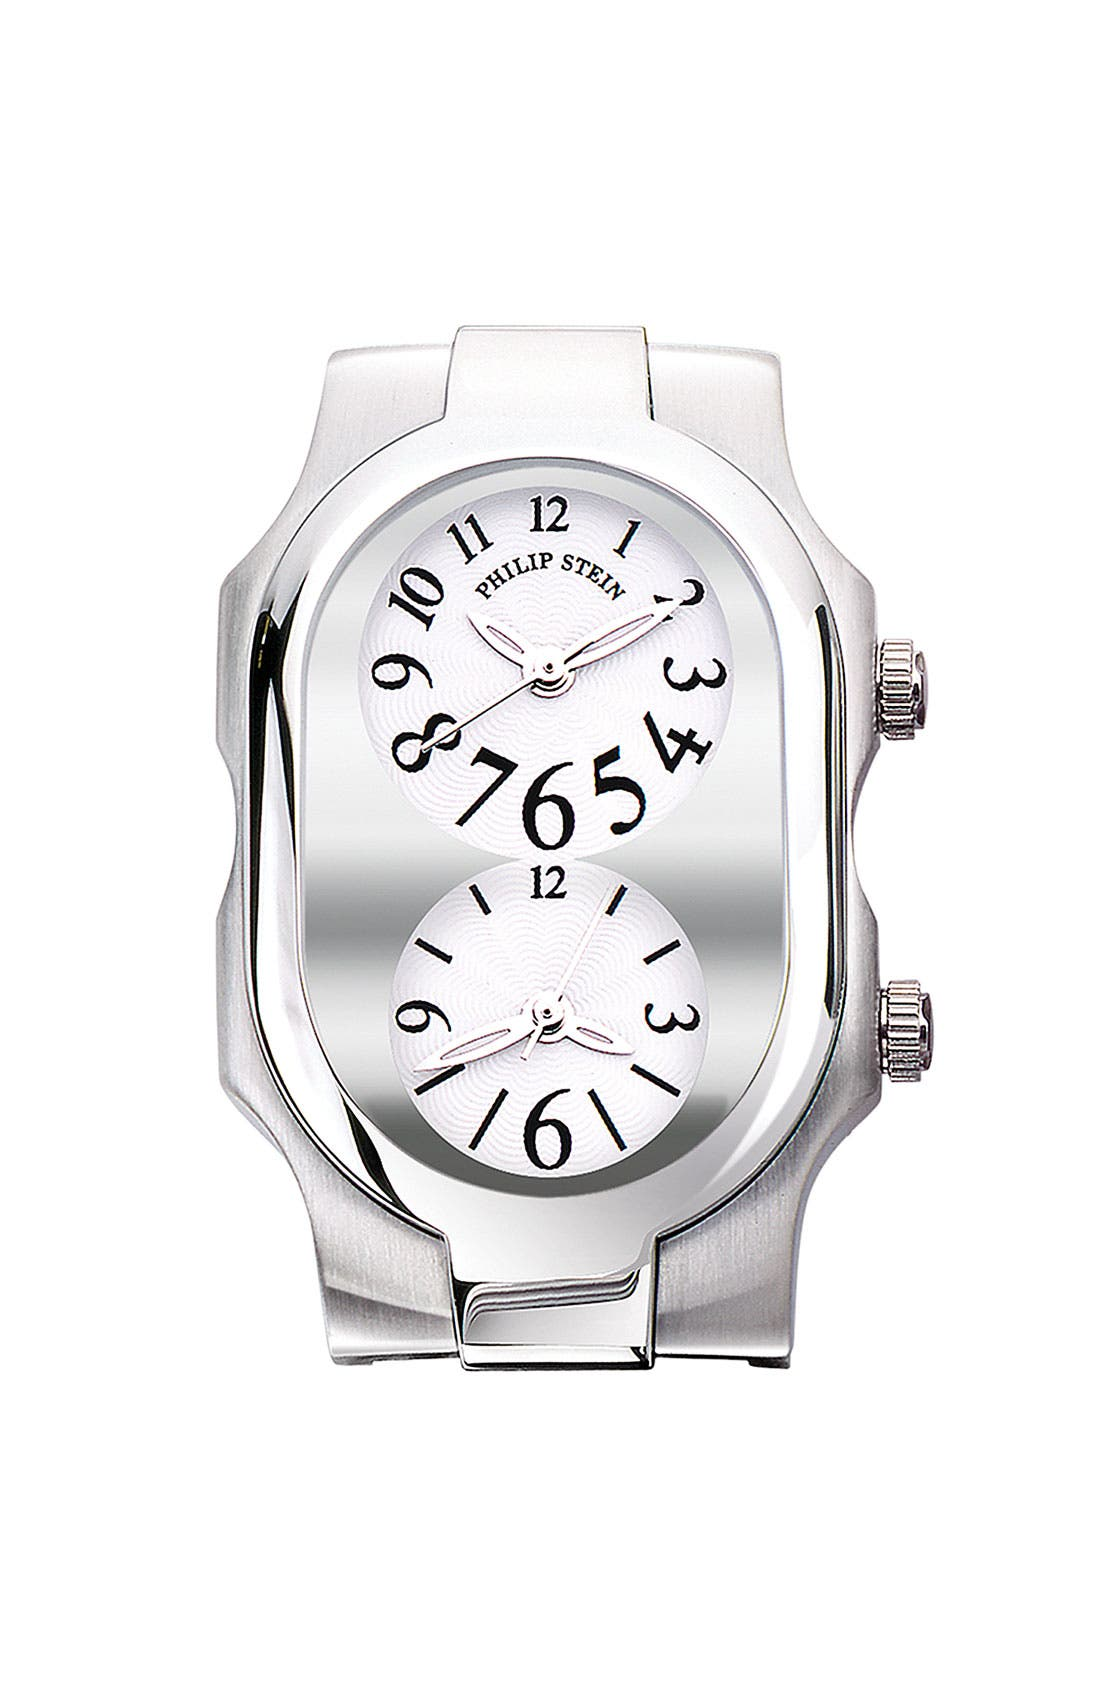 Alternate Image 1 Selected - Philip Stein® Ladies' 'Signature' Small Watch Case